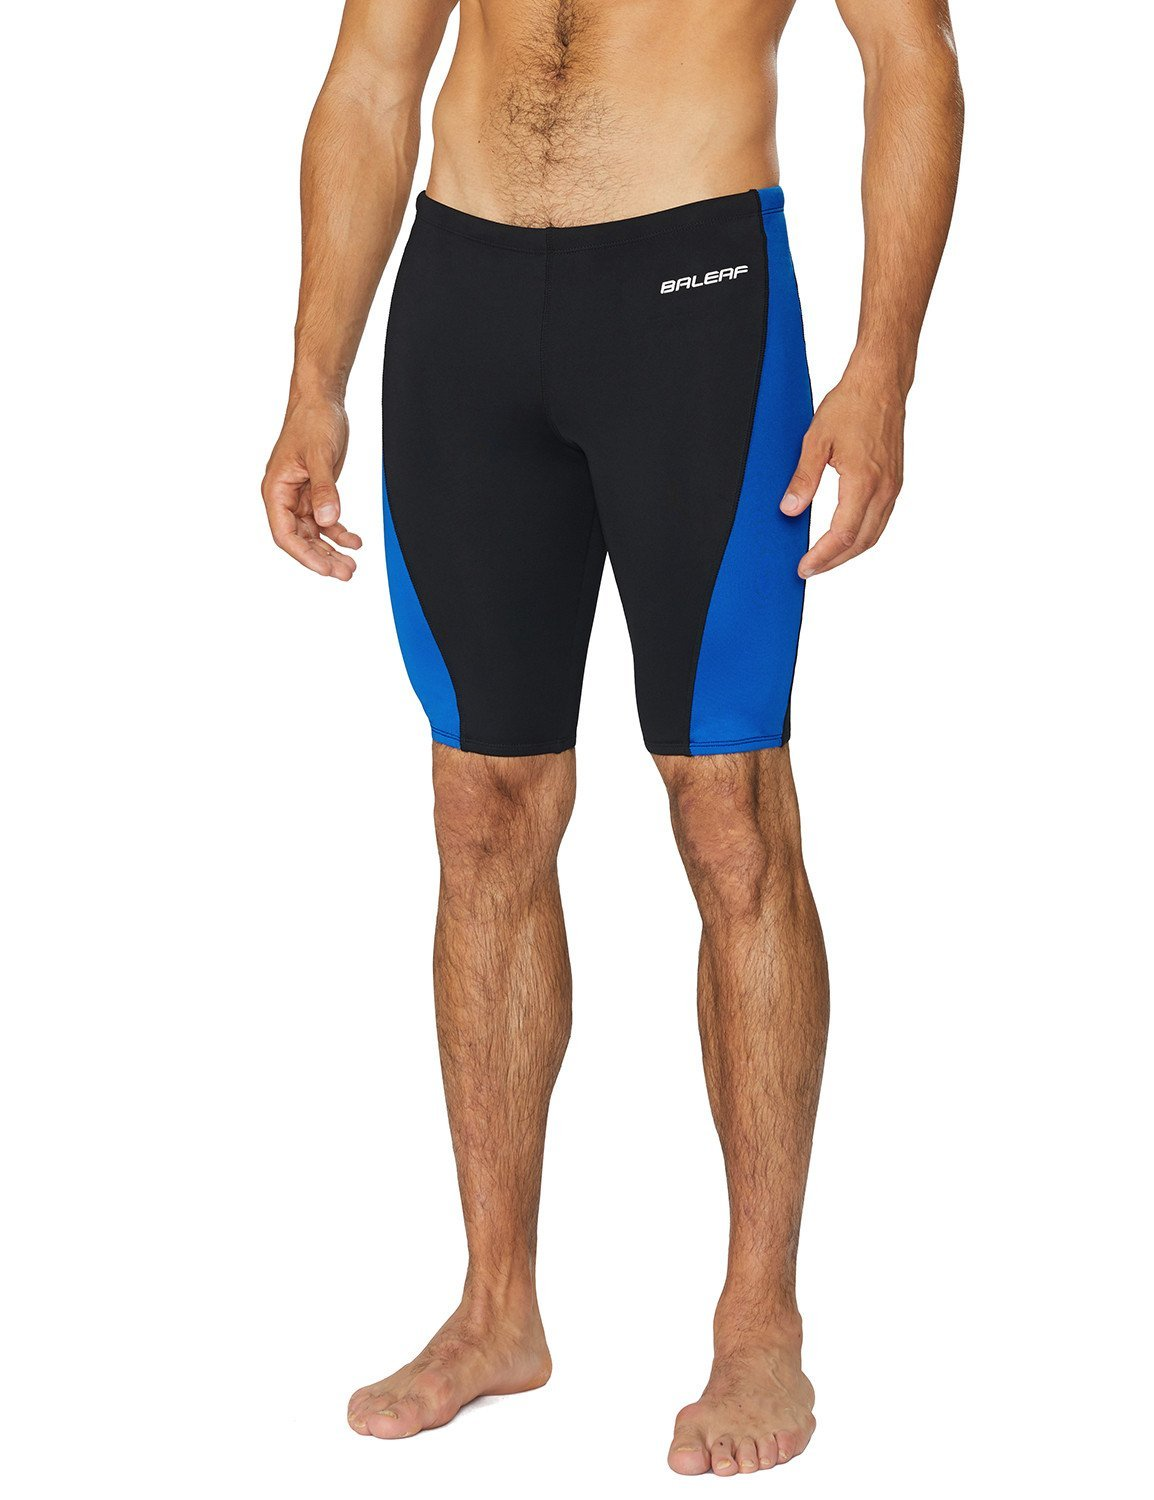 Baleaf Men's Durable Training Polyester Jammer Swimsuit Black/Blue Size 34